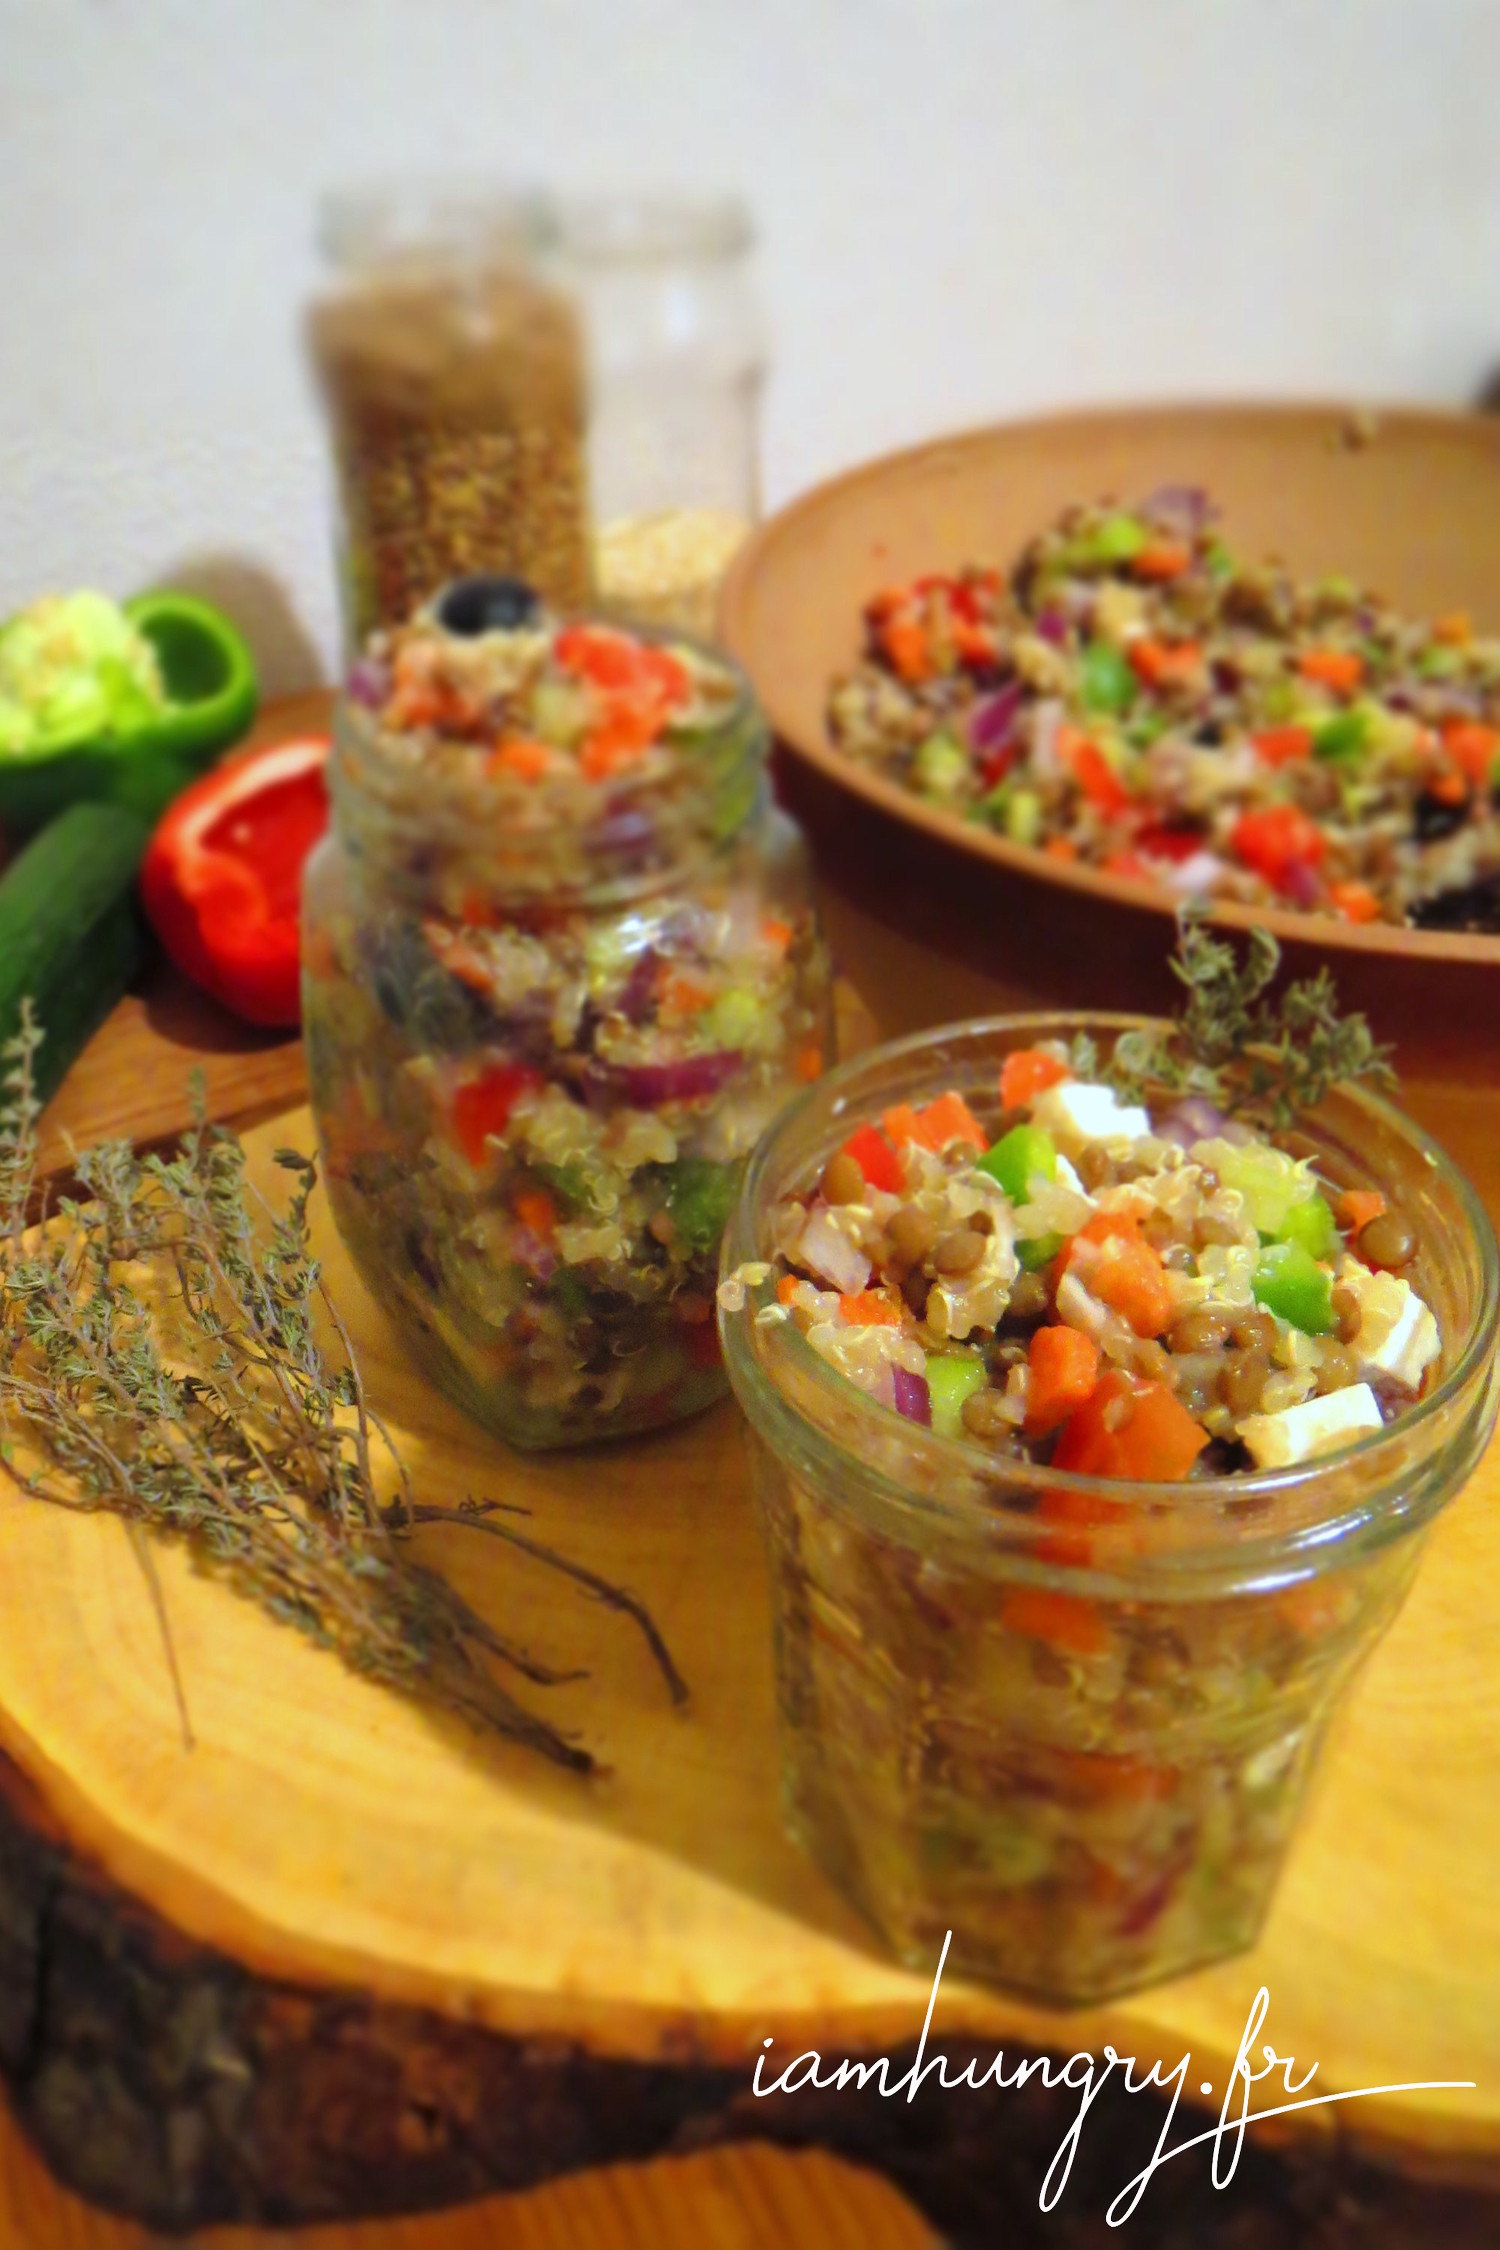 Raw vegetables salad with quinoa and lentil